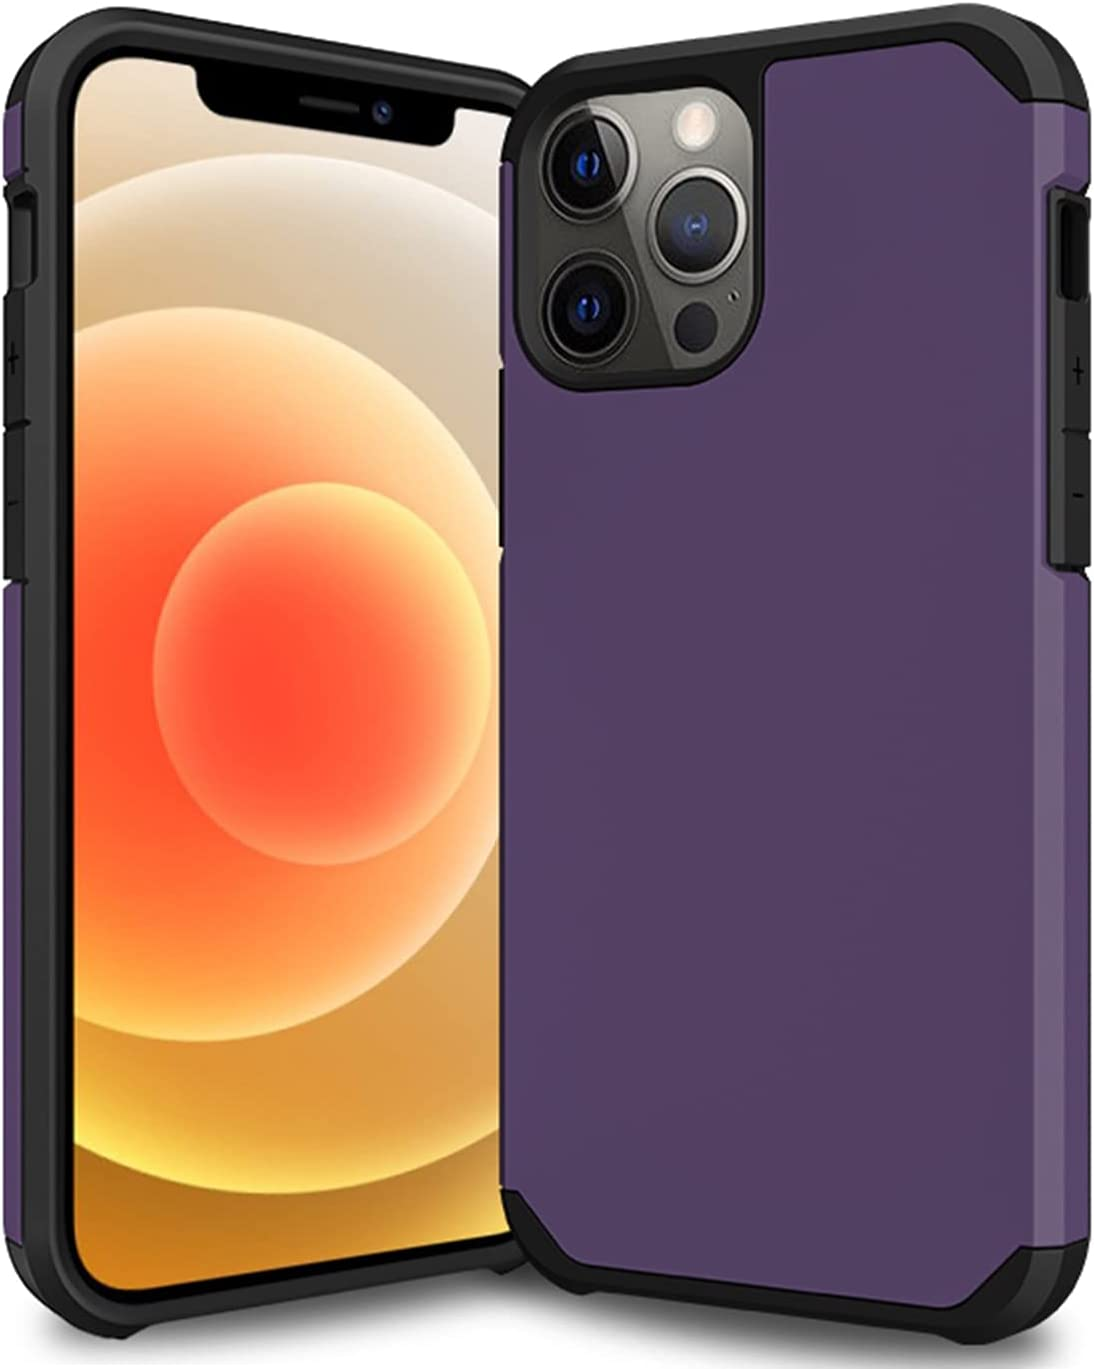 Nyxozonny Phone Case Compatible with iPhone 12 Pro Max(6.7 inch), Smooth Touch Lightweight Slim Full-Body Protective Bumper Case for Men&Women(Purple)